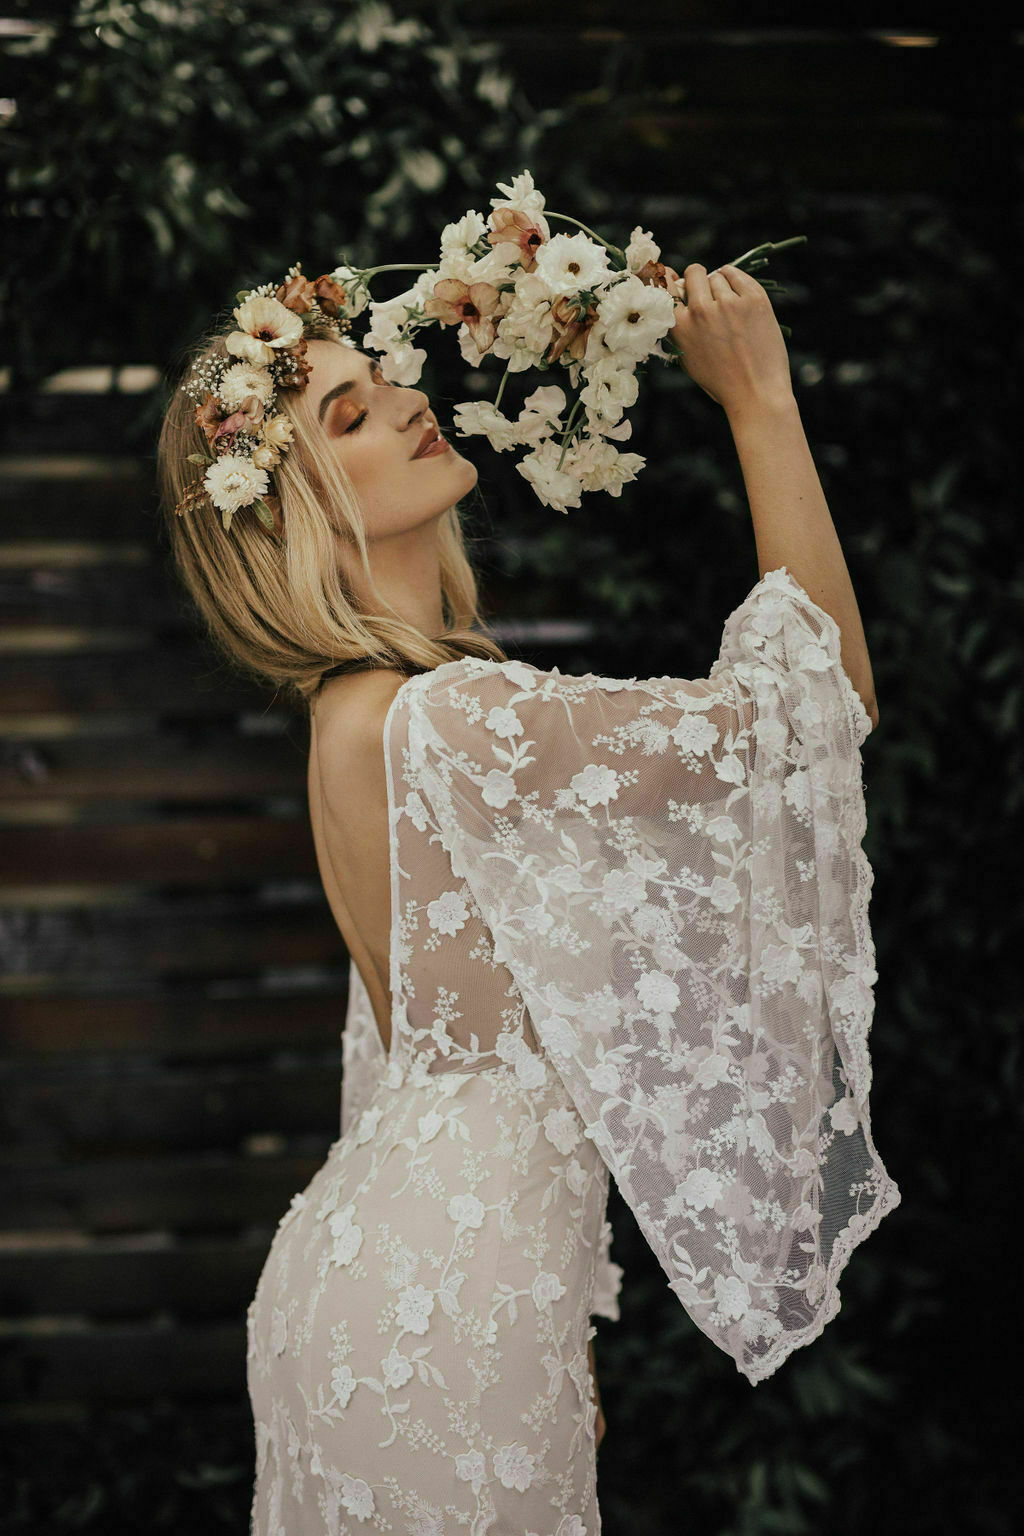 Samantha-angel-sleeves-wedding-dress-in-off-white-lace-with-long-dreamy-train-and-built-in-corset